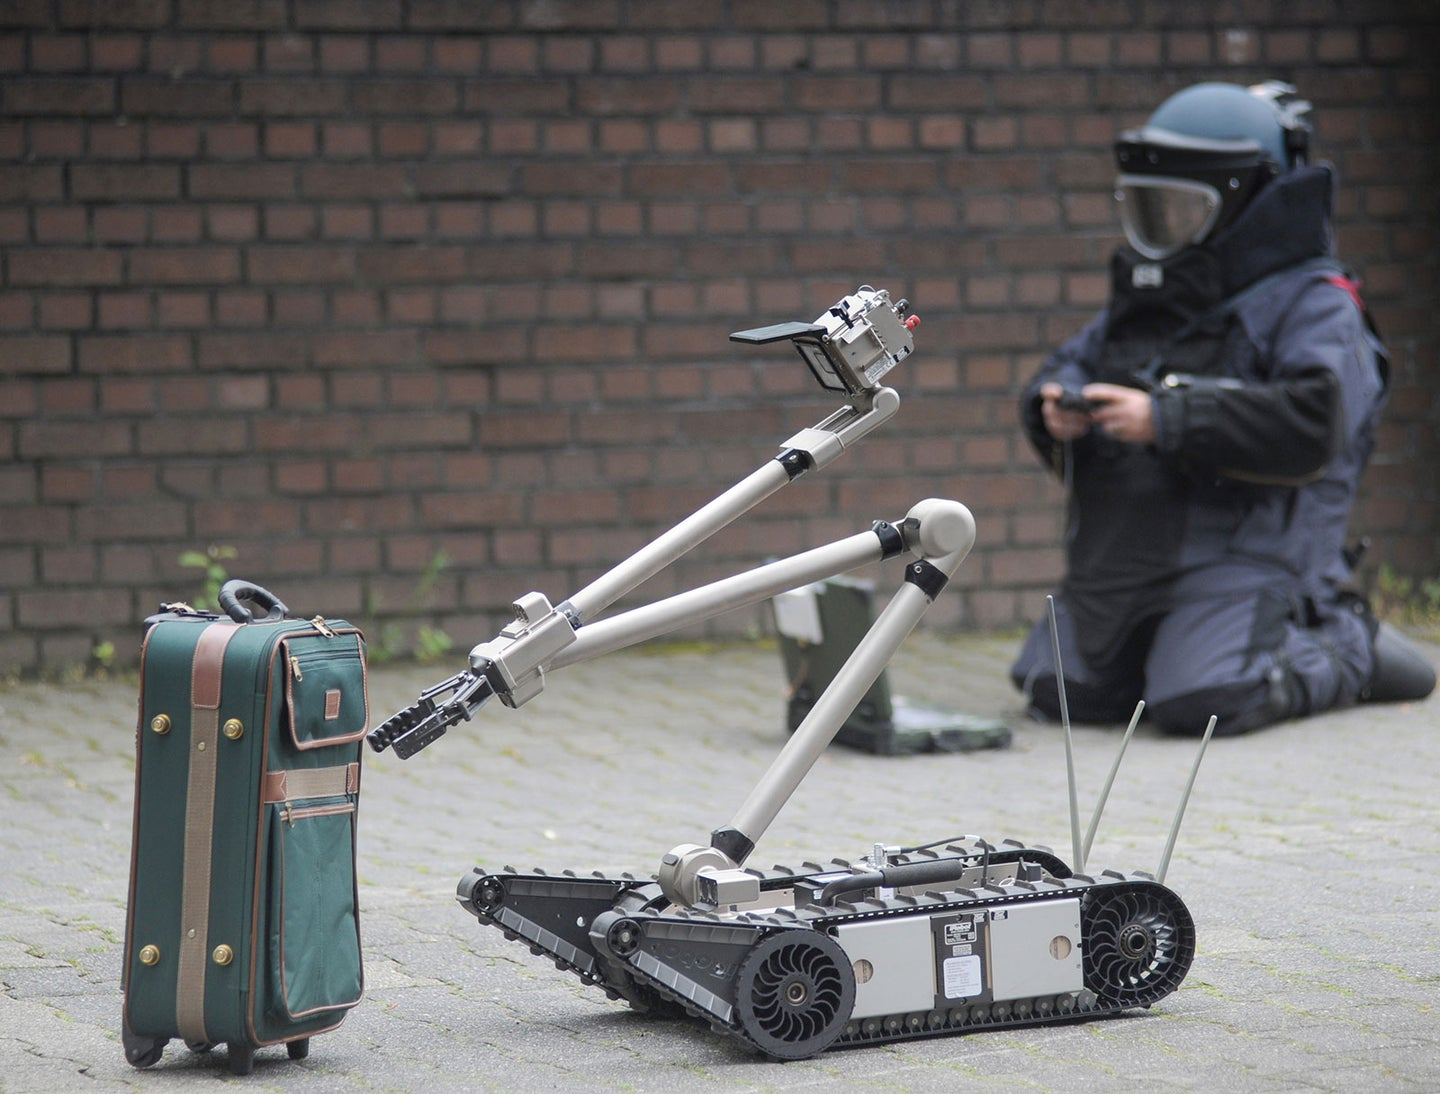 Robot Inspects Suitcase